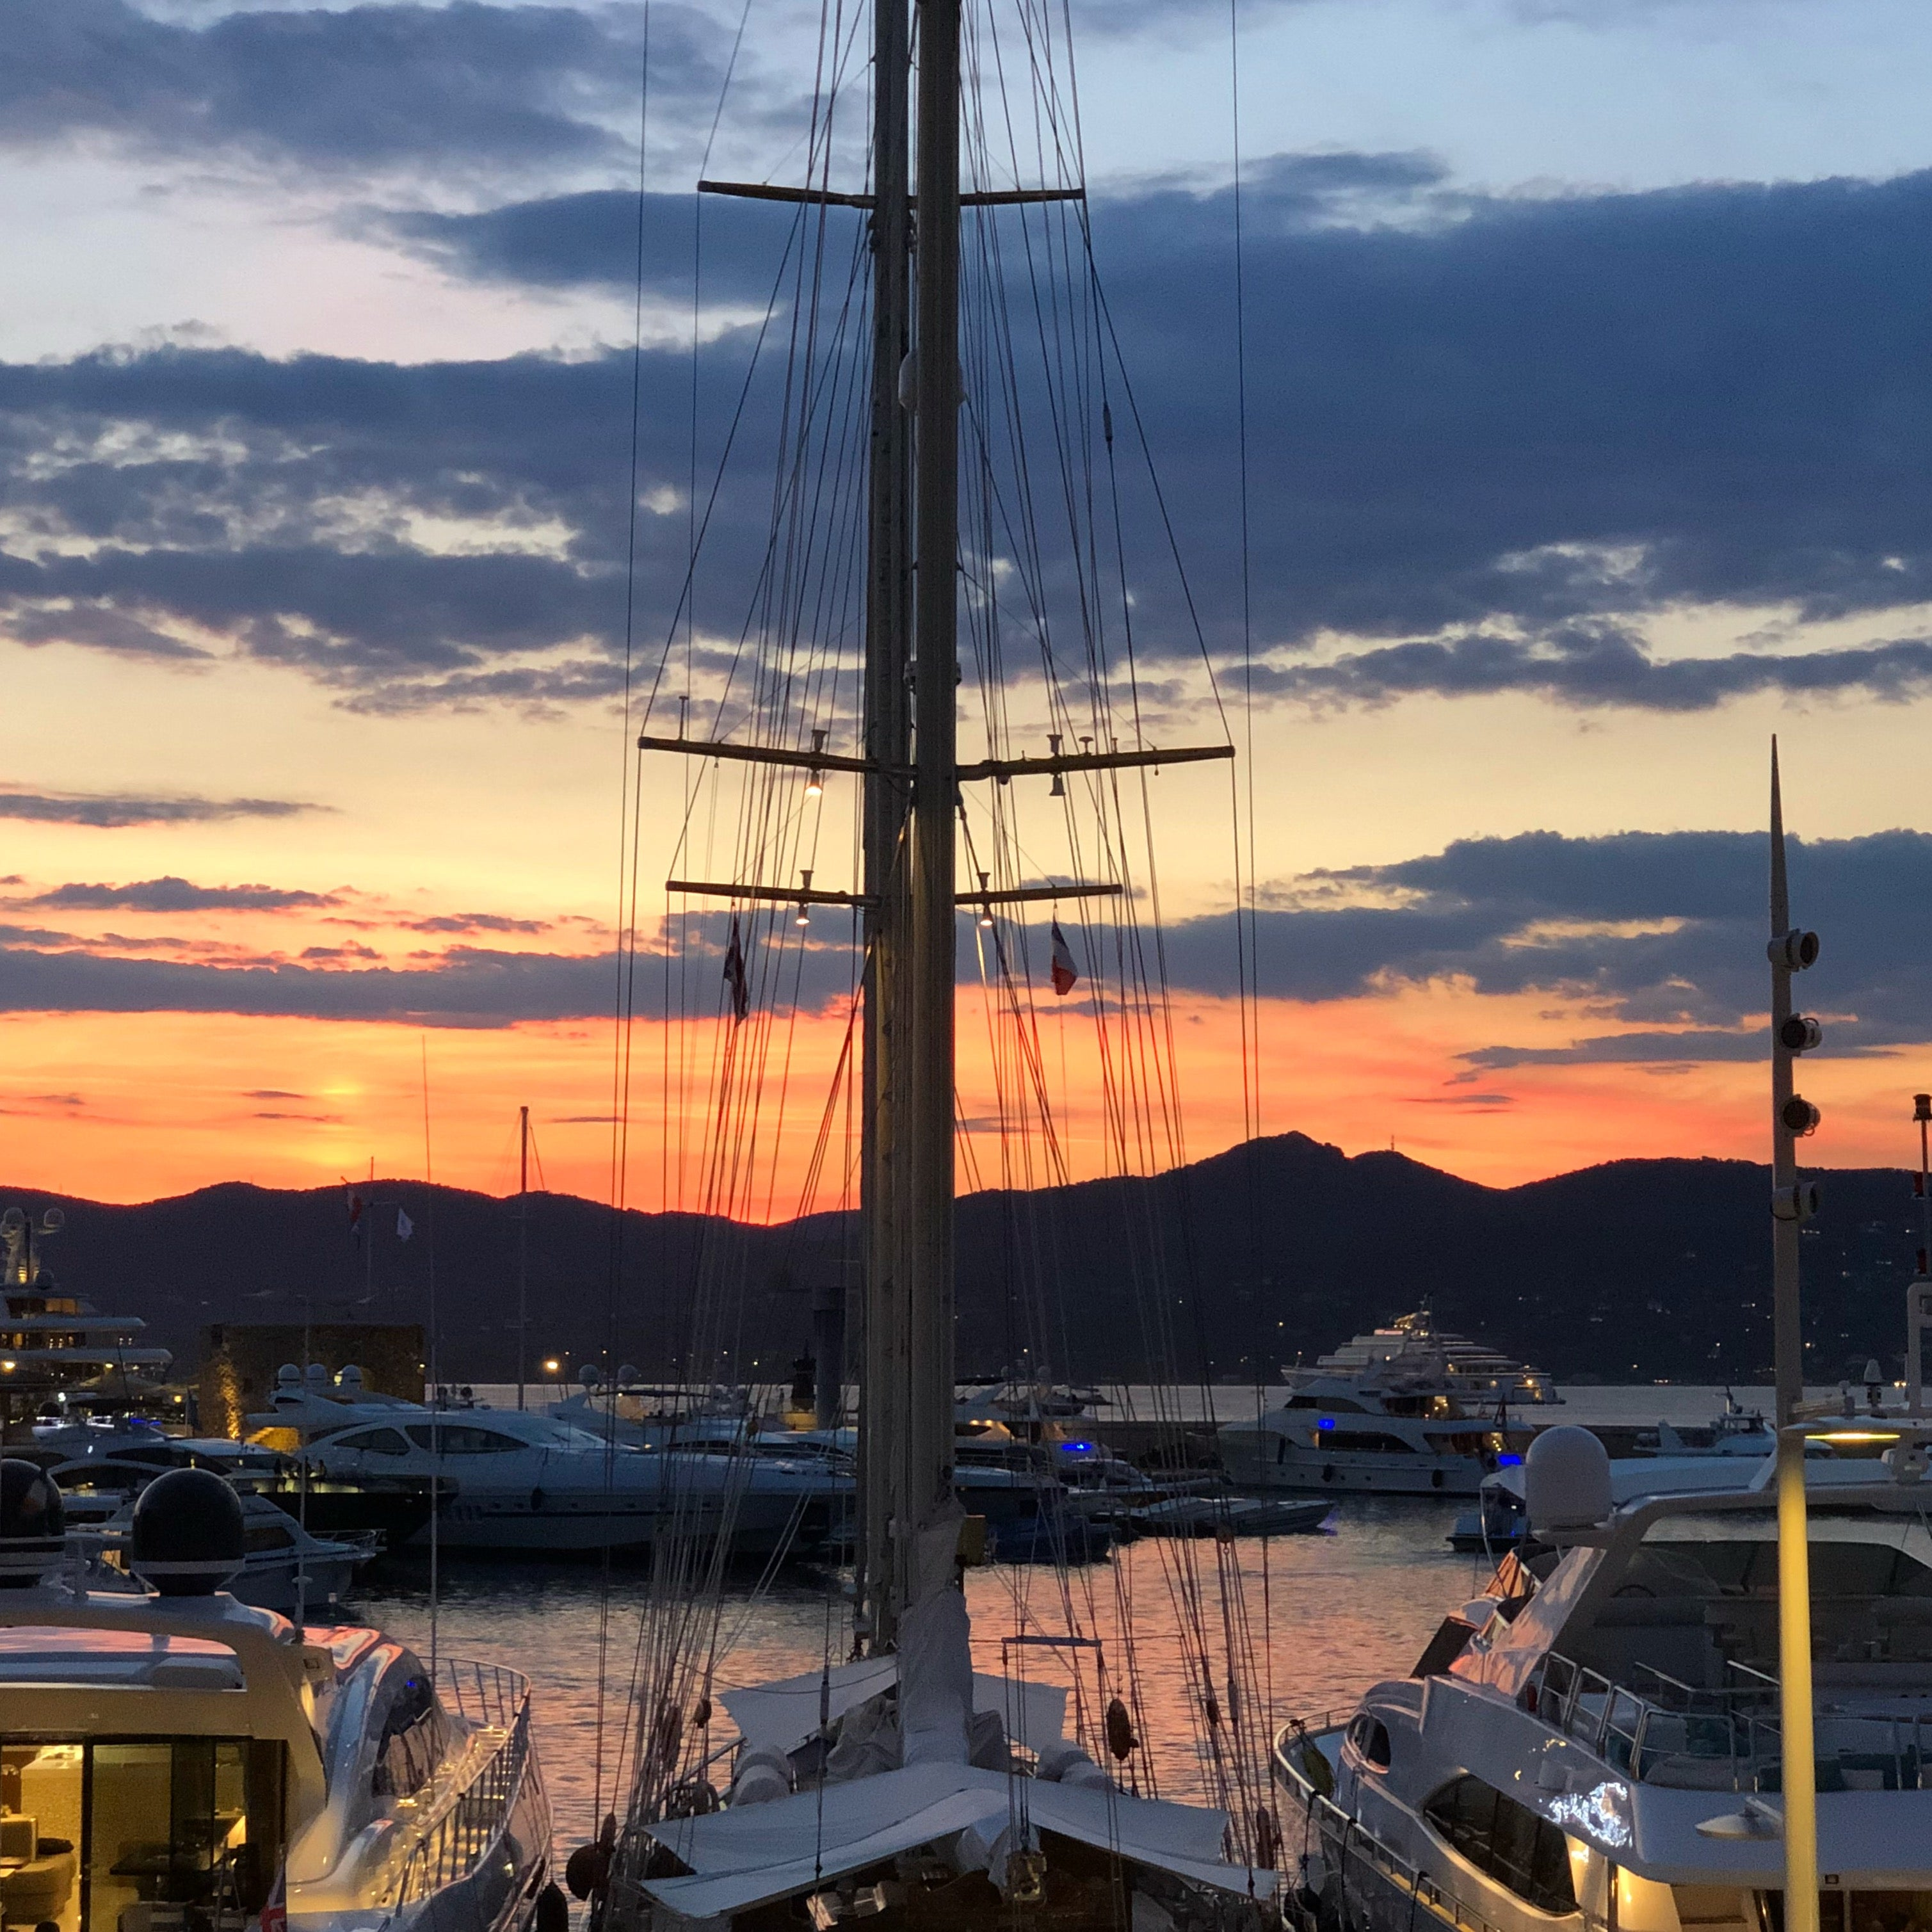 Sunset in the port of St Tropez